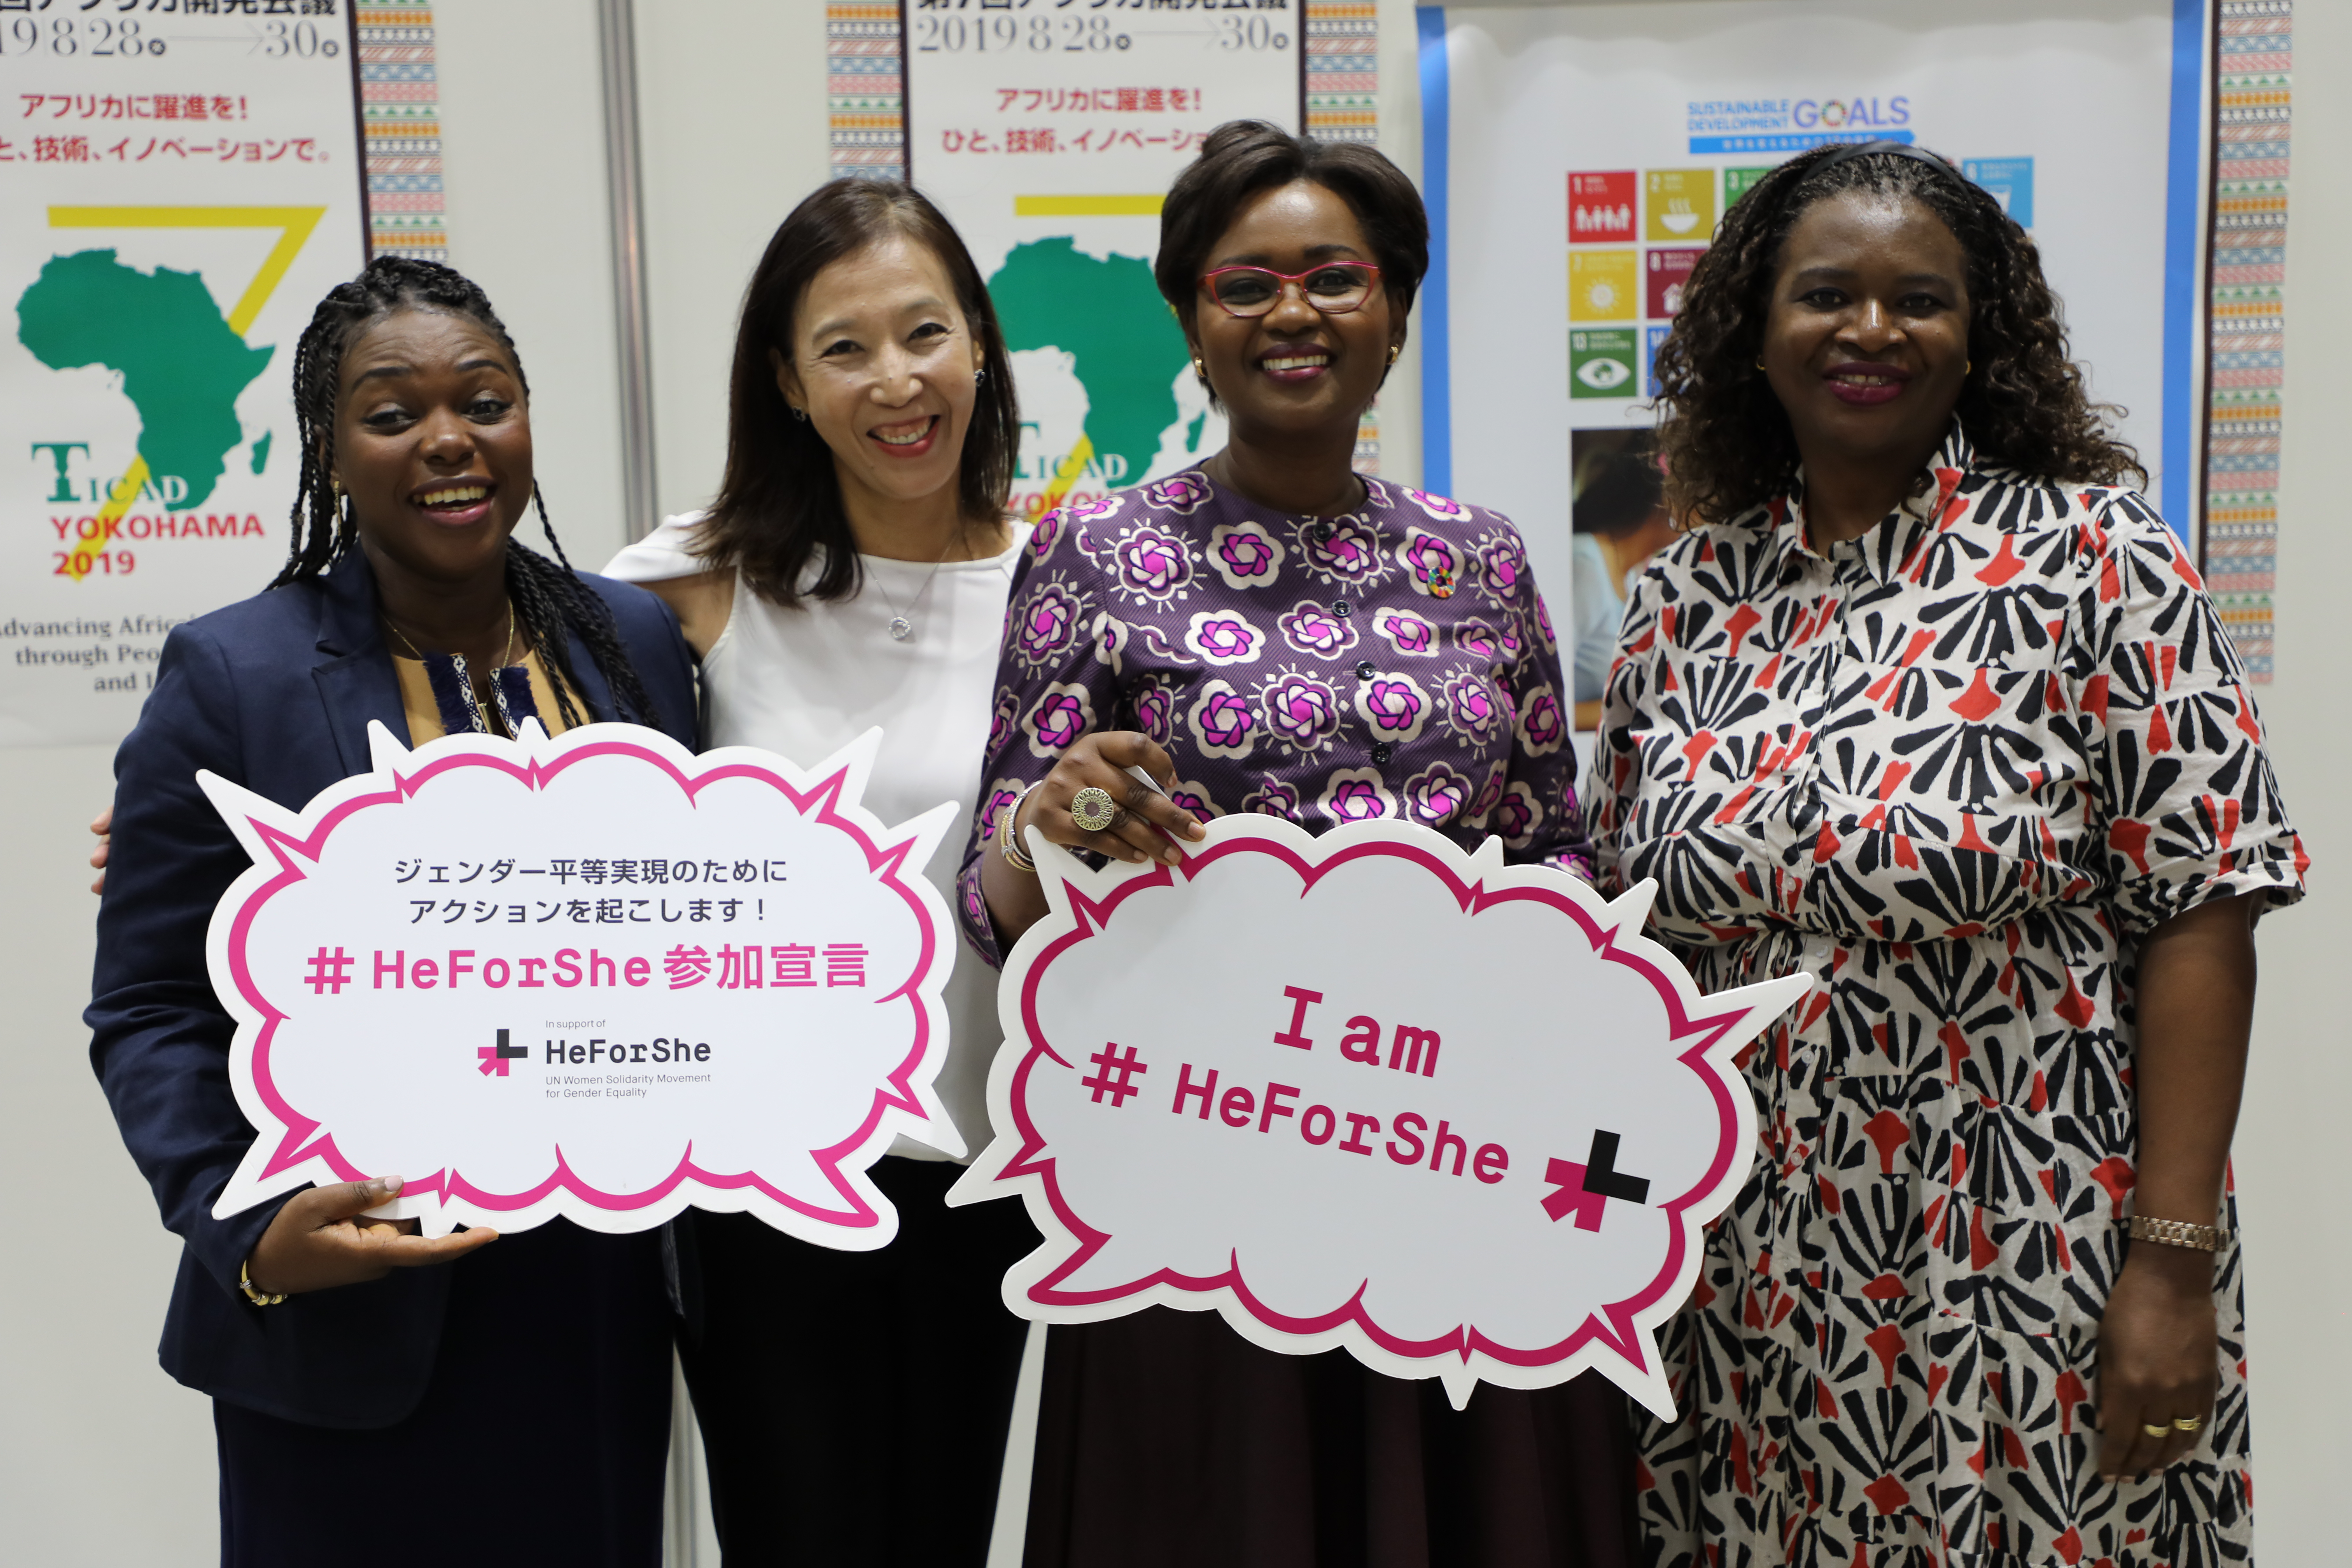 From right to left: Letty Chiwara, UN Women Representative to Ethiopia, Africa Union and UNECA; Oulimata Sarr, Regional Director a.i. UN Women WCARO; Kae Ishikawa, Director of UN Women Japan Liaison Office; Mame Khary Diene, Founder of Bioessence.